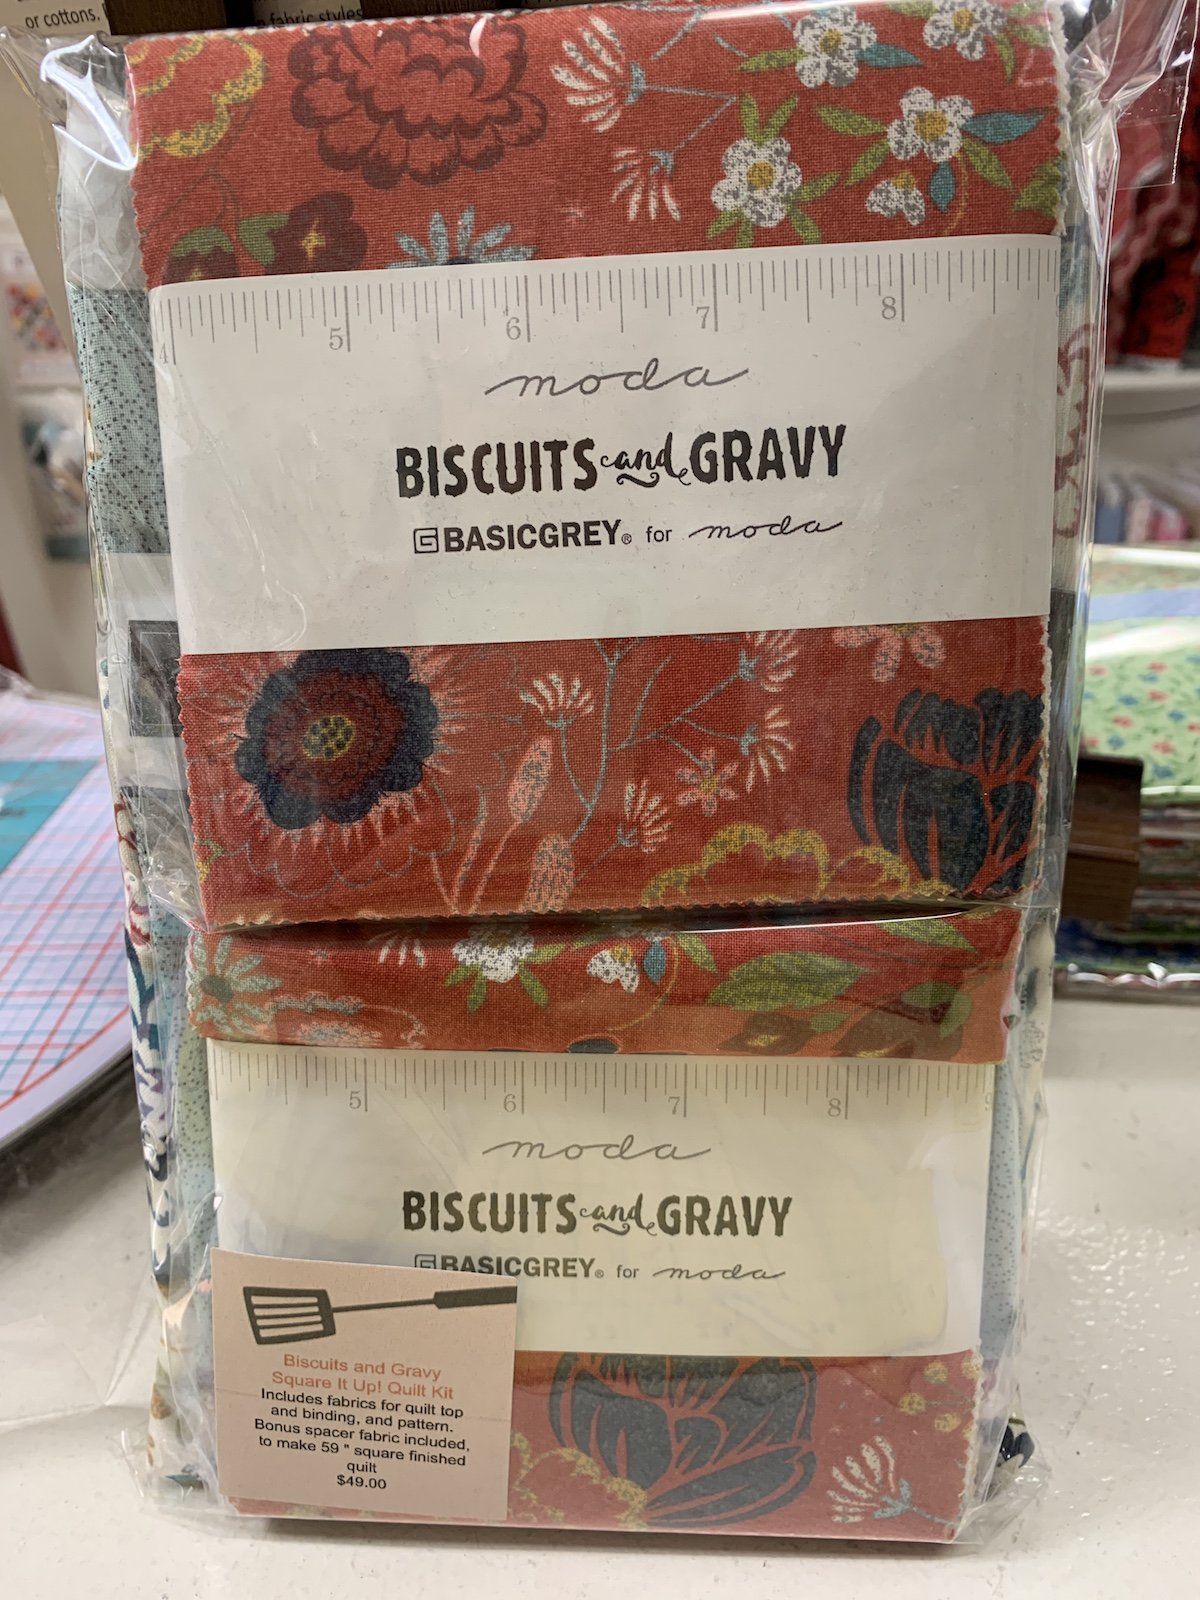 Biscuits and Gravy Square It Up Quilt Kit